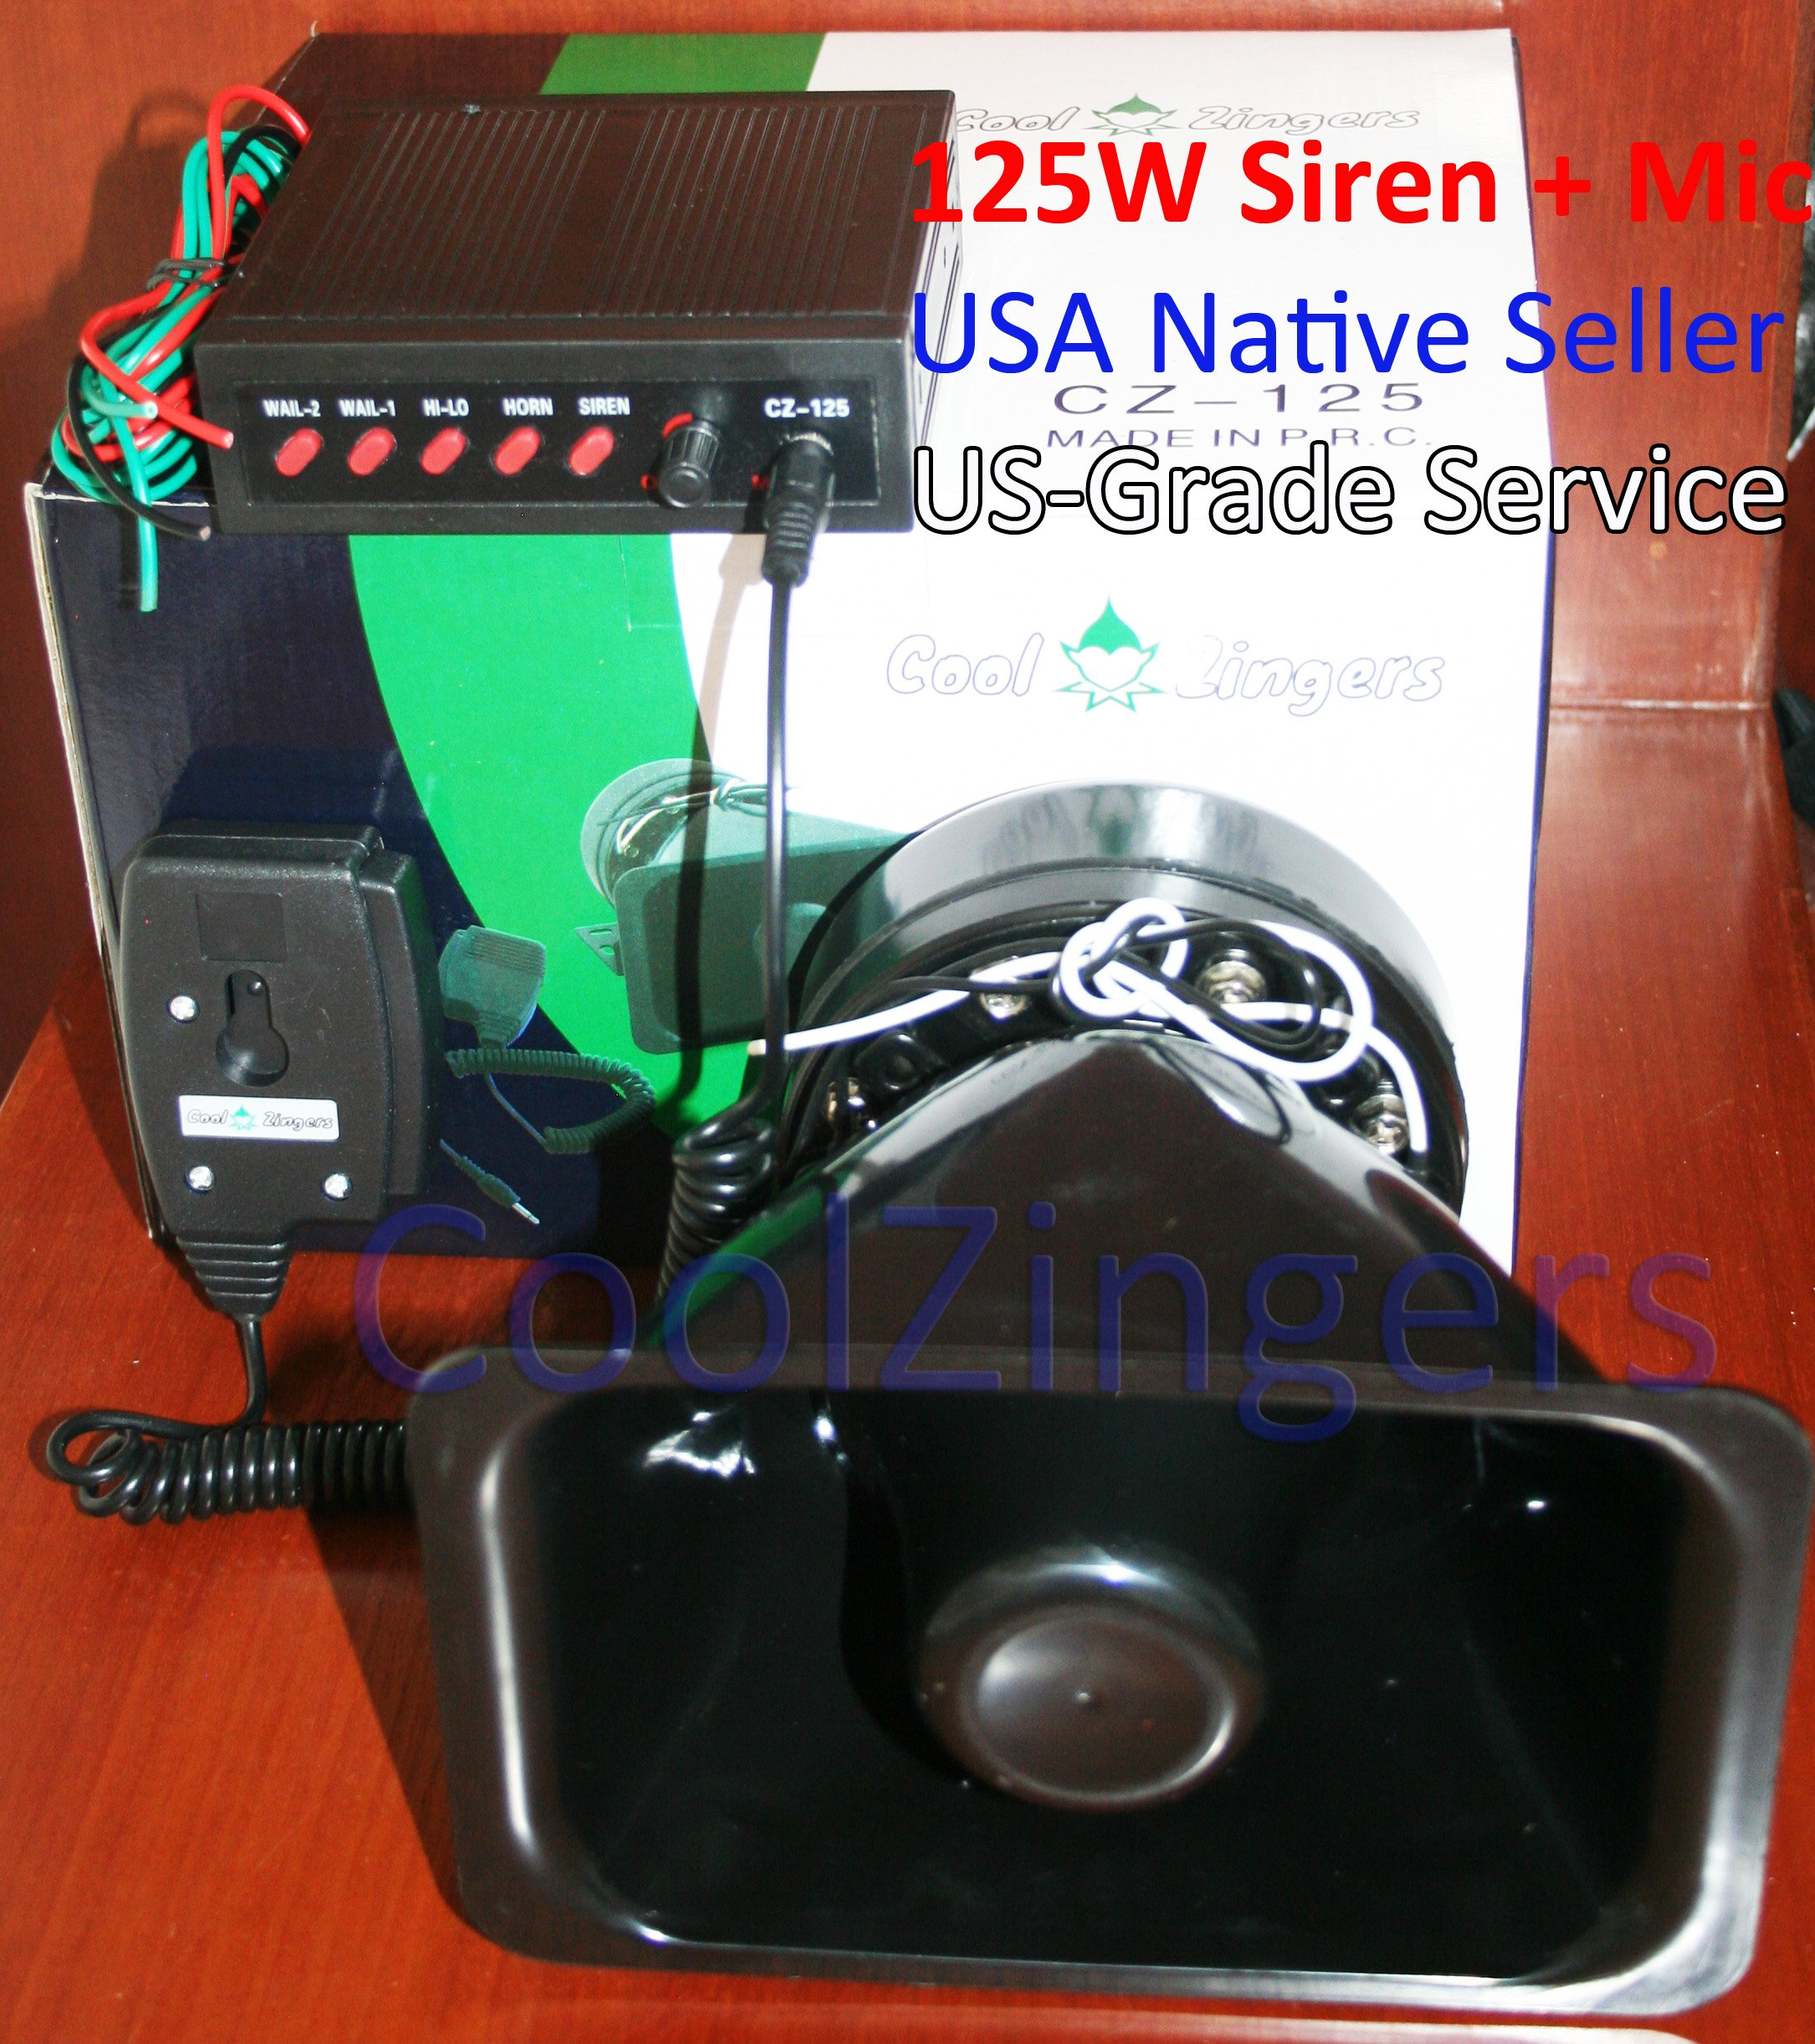 Cool Zingers 125 Watt Police Siren 5 Sound Emergency Vehicle Warning Speaker Pa System Microphone 12v High Power by Cool Zingers (Image #1)